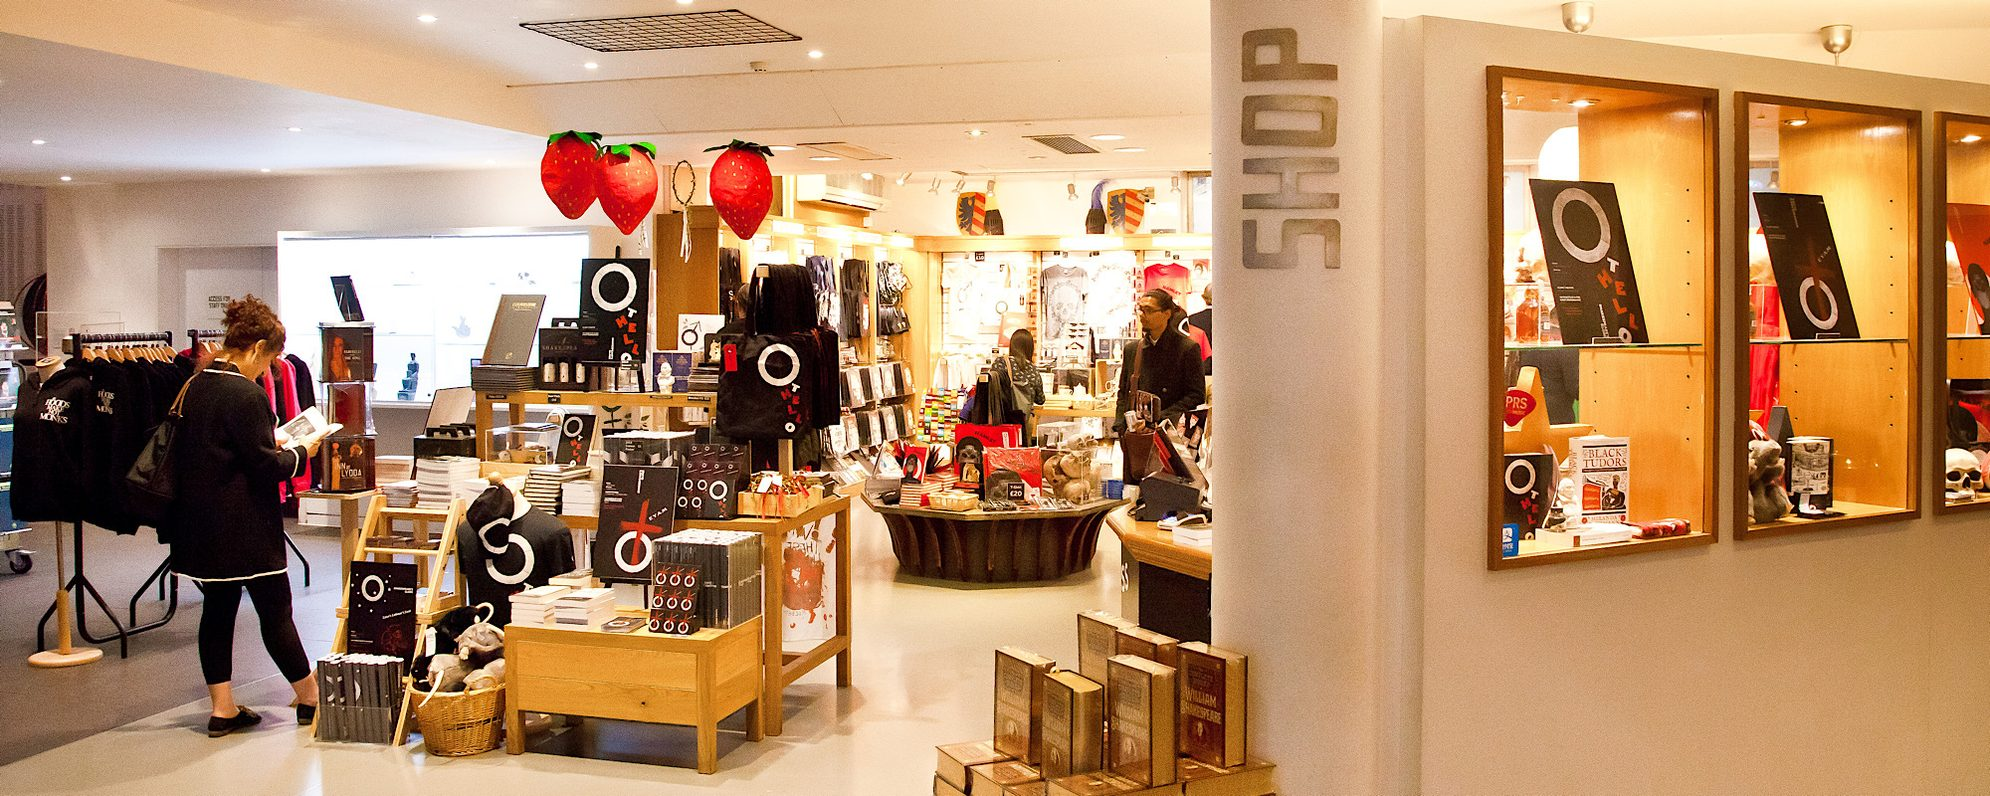 A shop inside a theatre is brightly lit and decorated with lots of merchandise, the word 'shop' can be seen written vertically up the wall